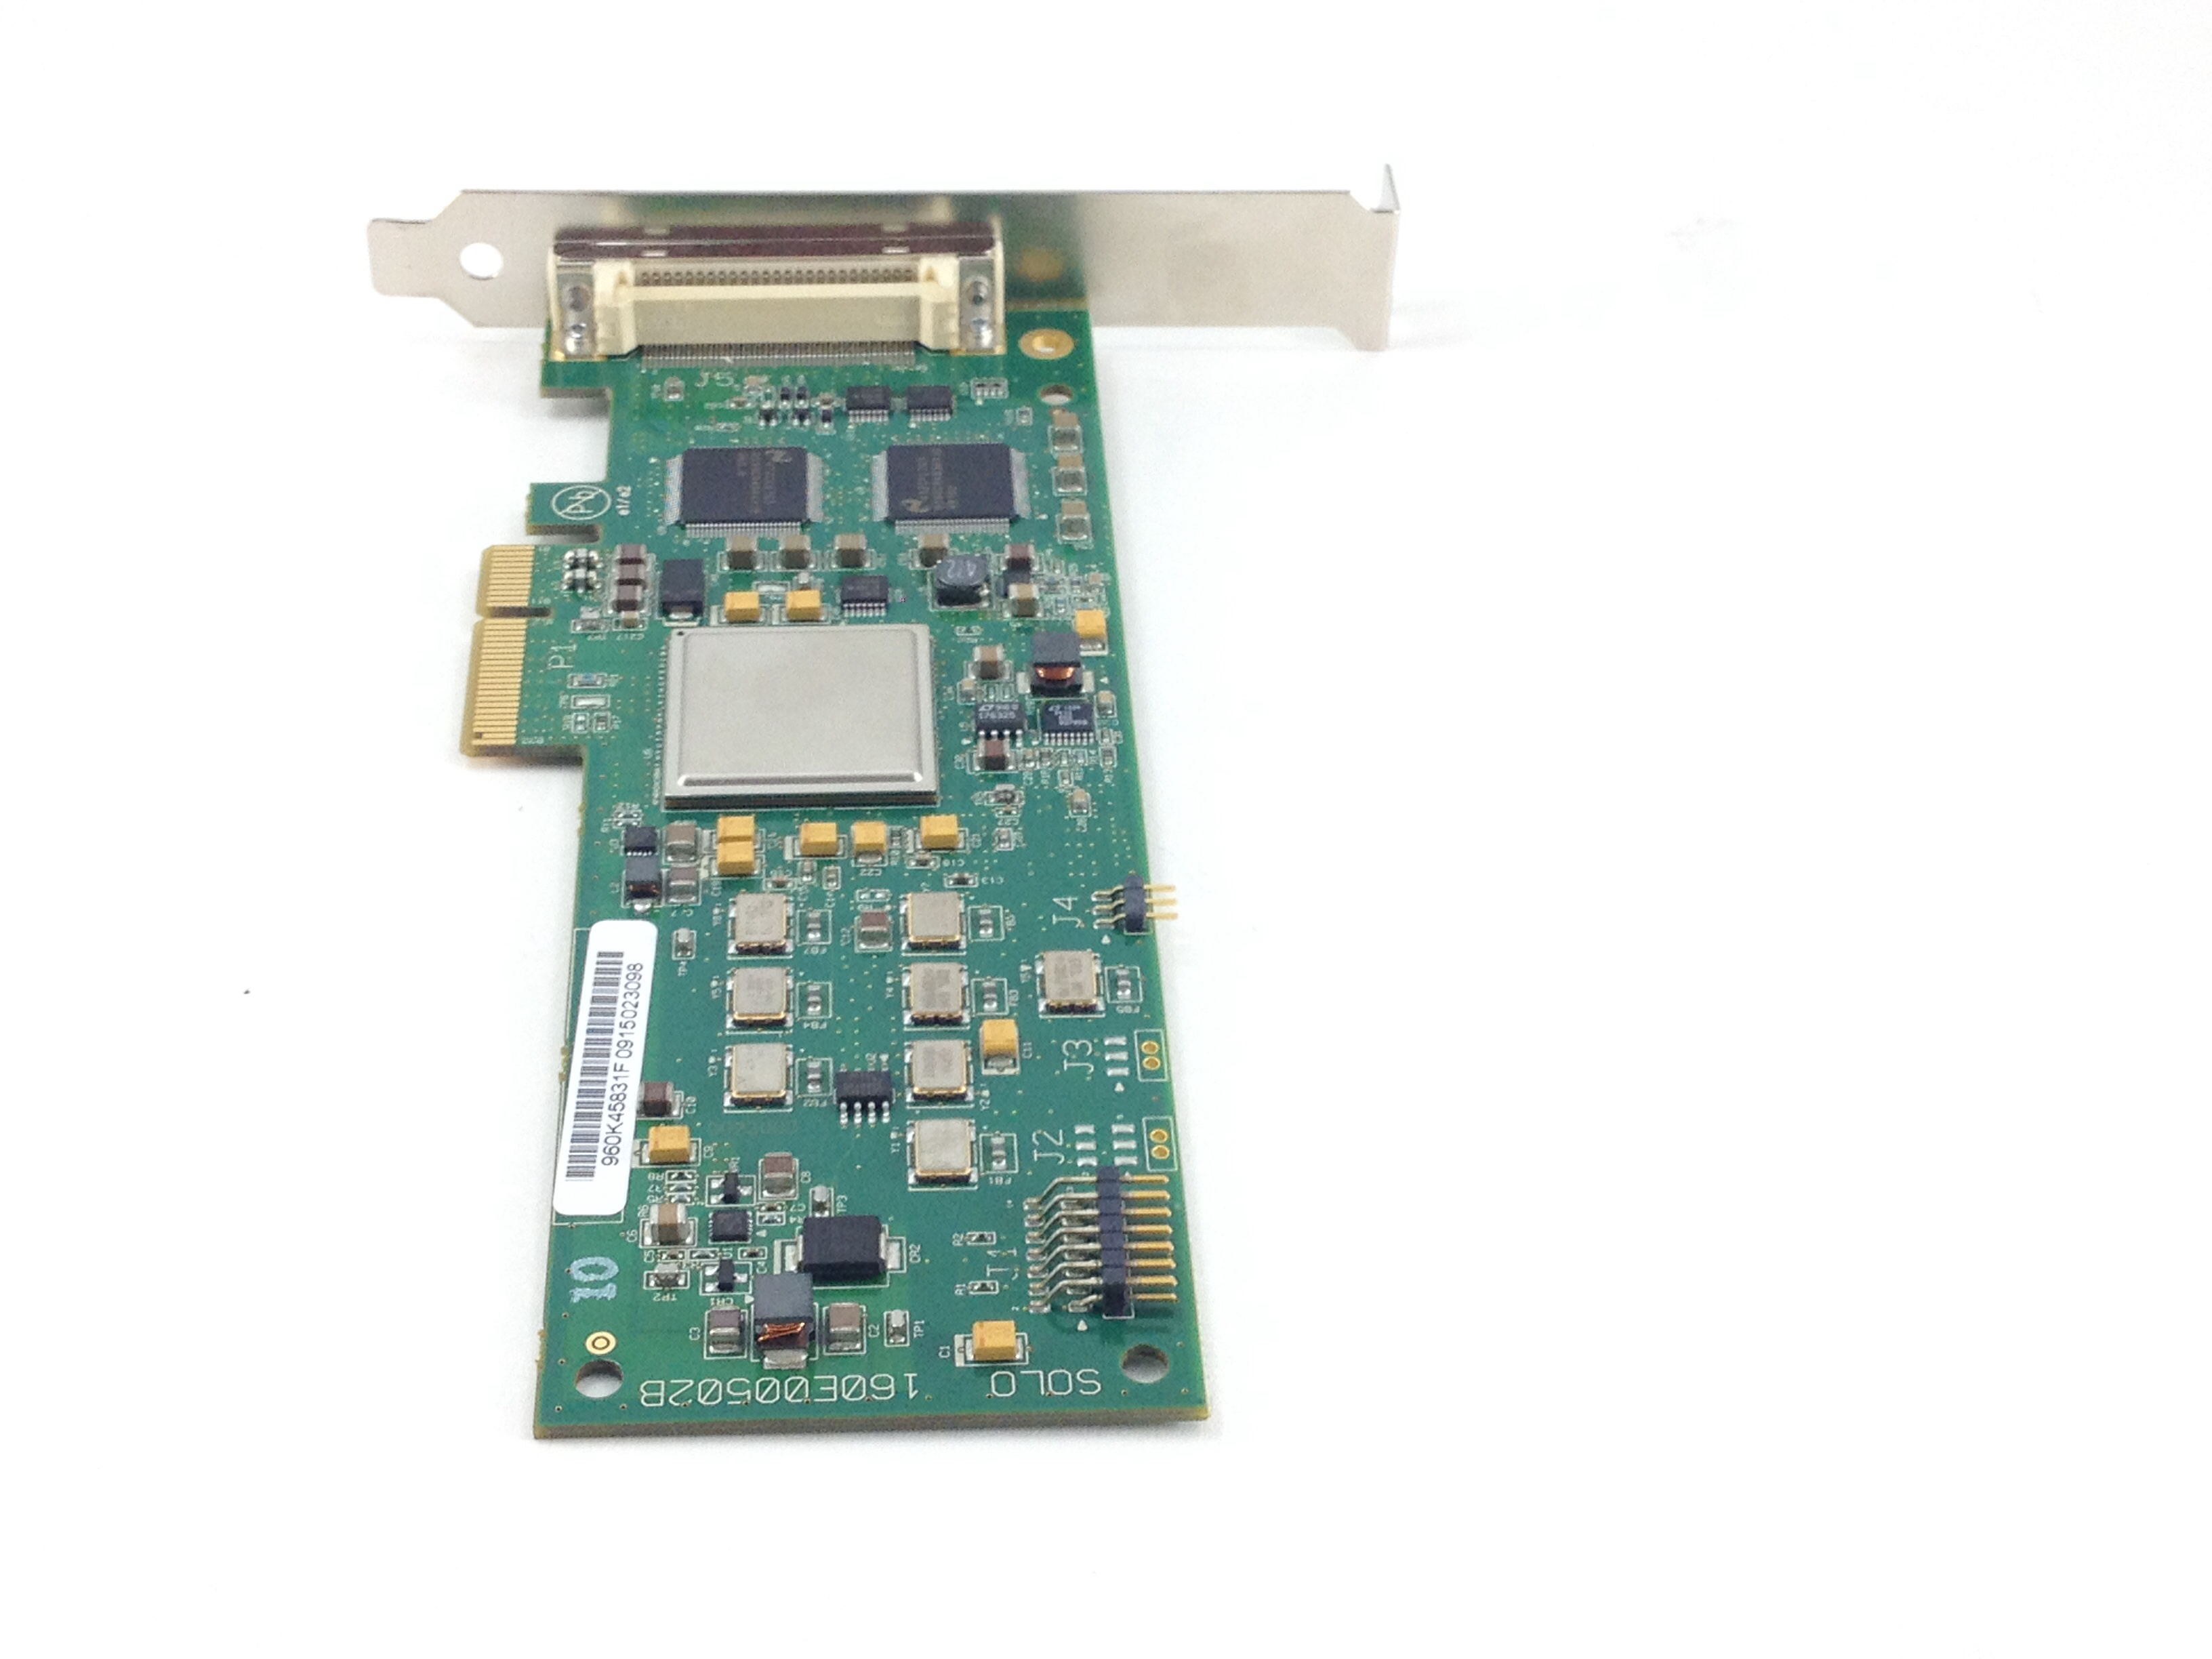 Dell Xlink Virtex 5 Xc5Vlx50T PCI-E Controller Card (VYRH8)